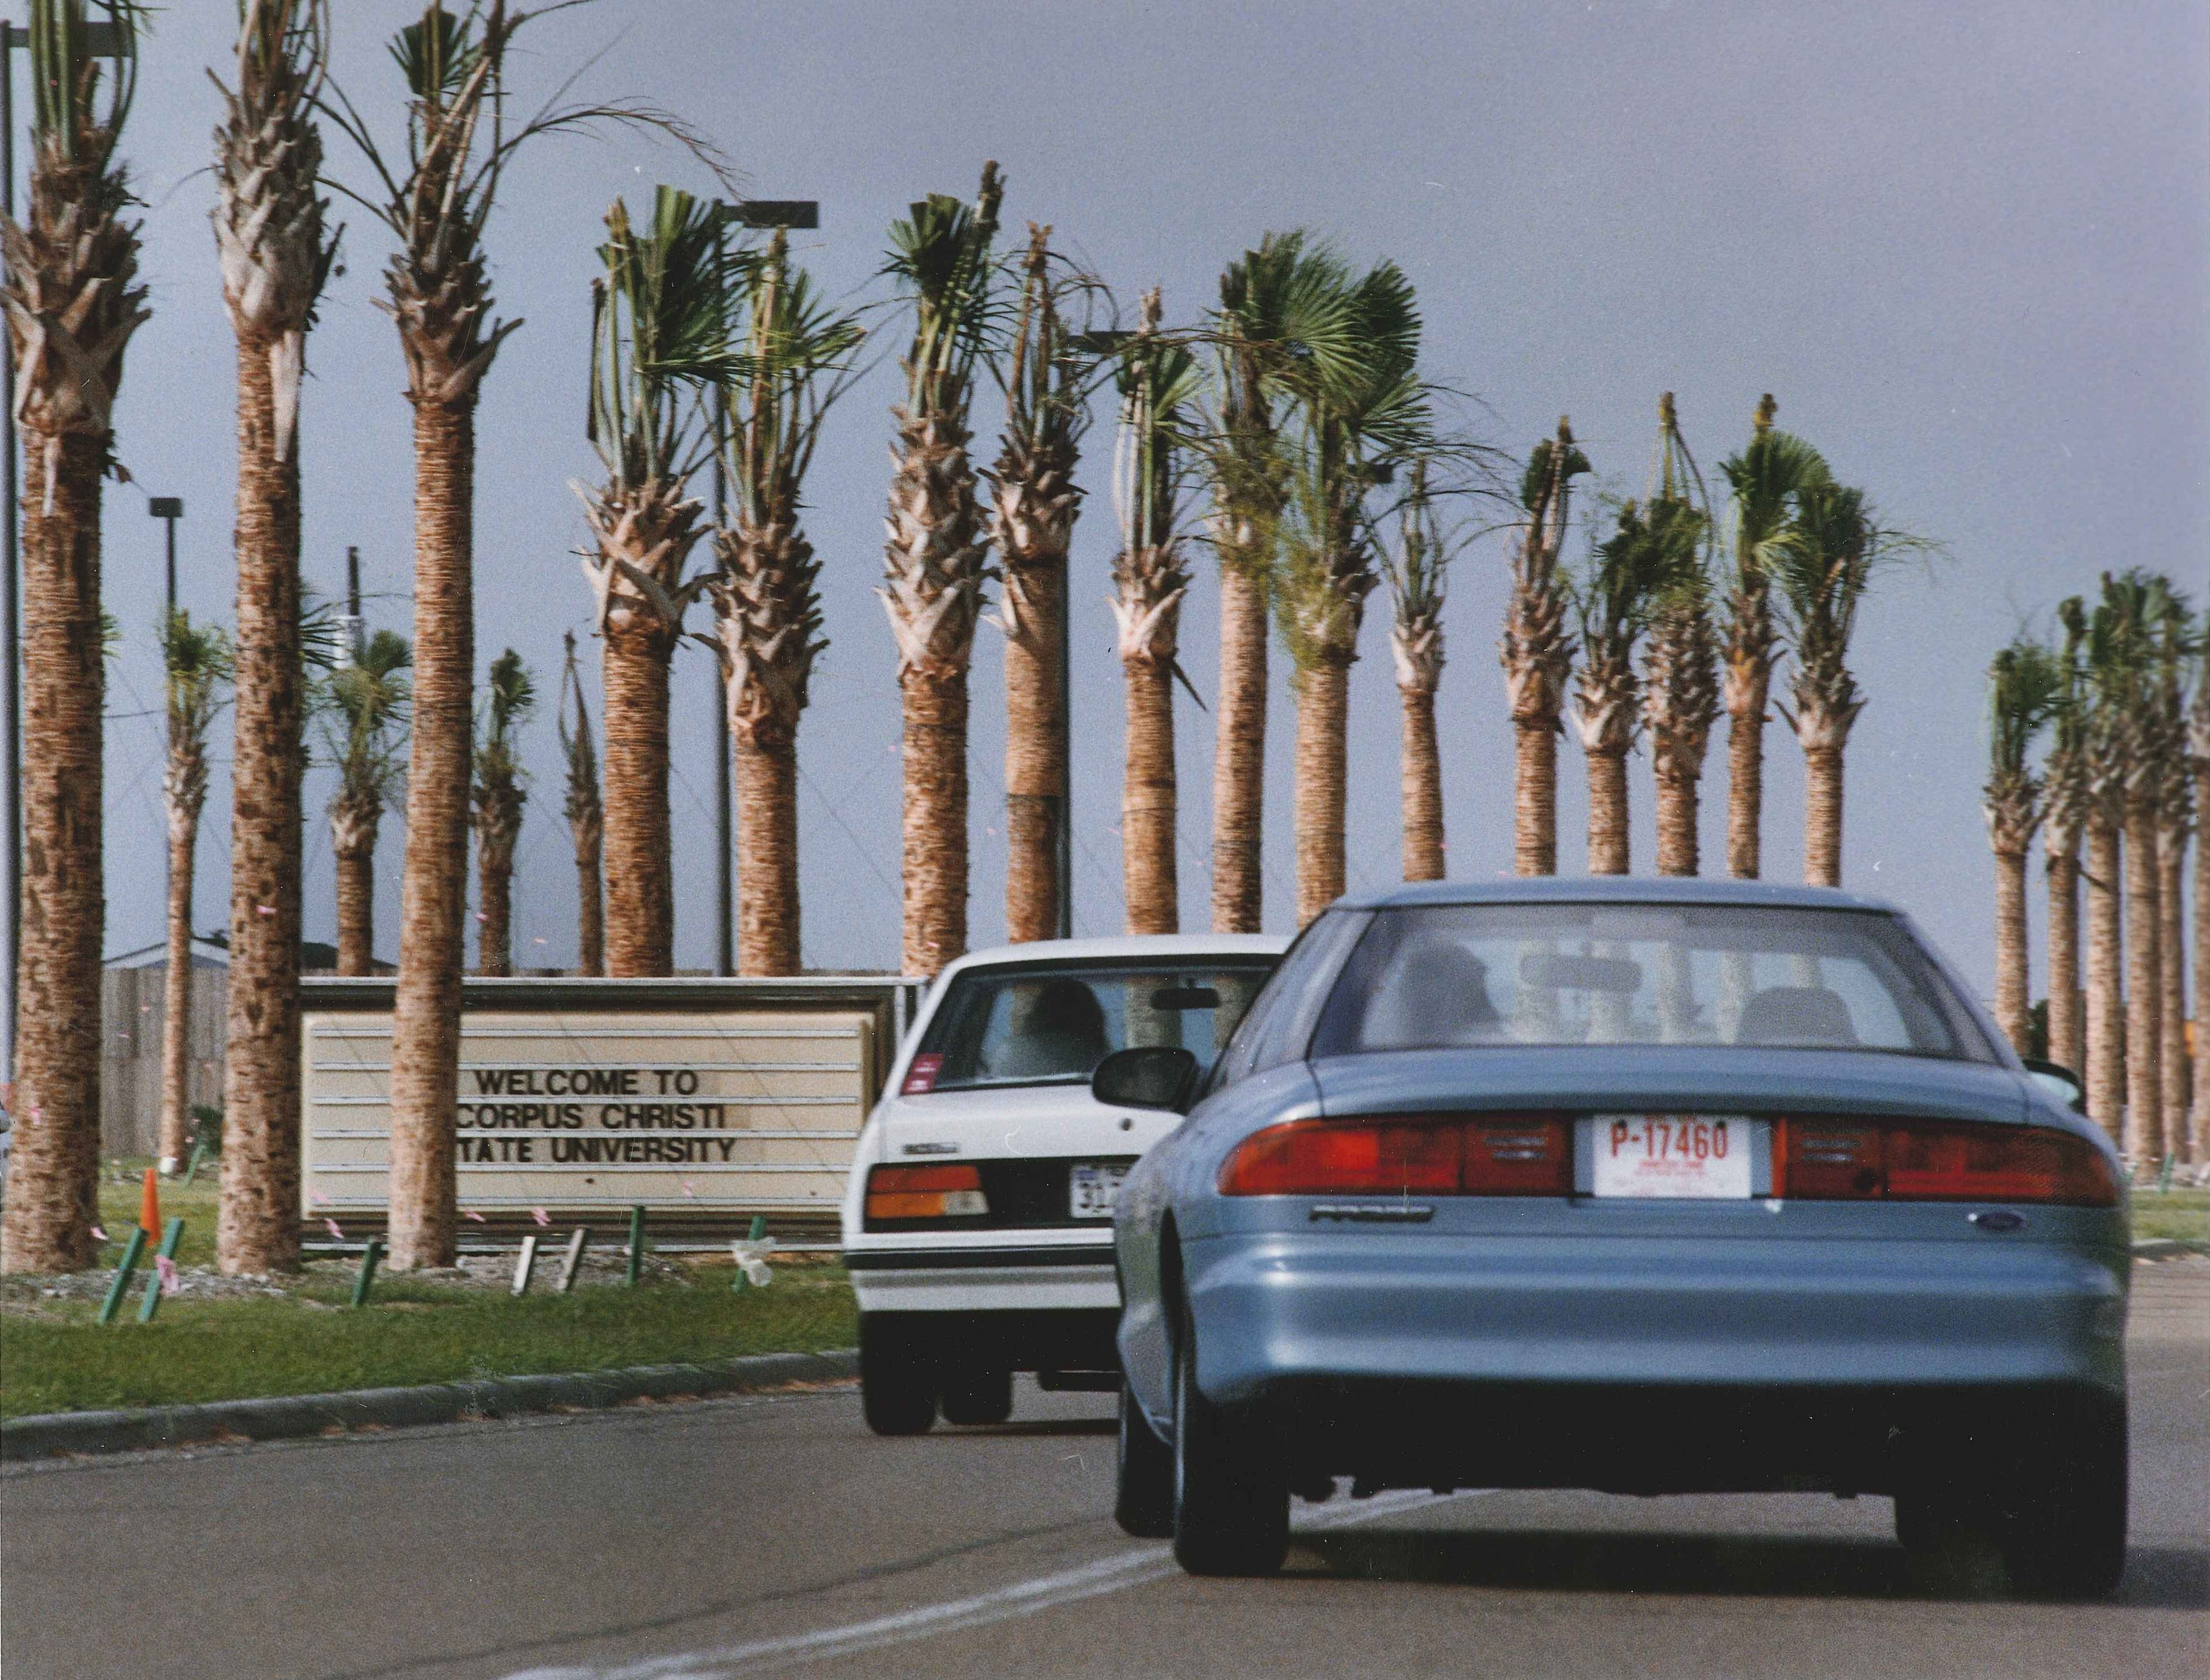 Traffic passes recently planted palm trees along the main entrance of the Corpus Christi State University campus on July 8, 1993. The beautification project came ahead of the school's name change to Texas A&M University-Corpus Christi that fall.